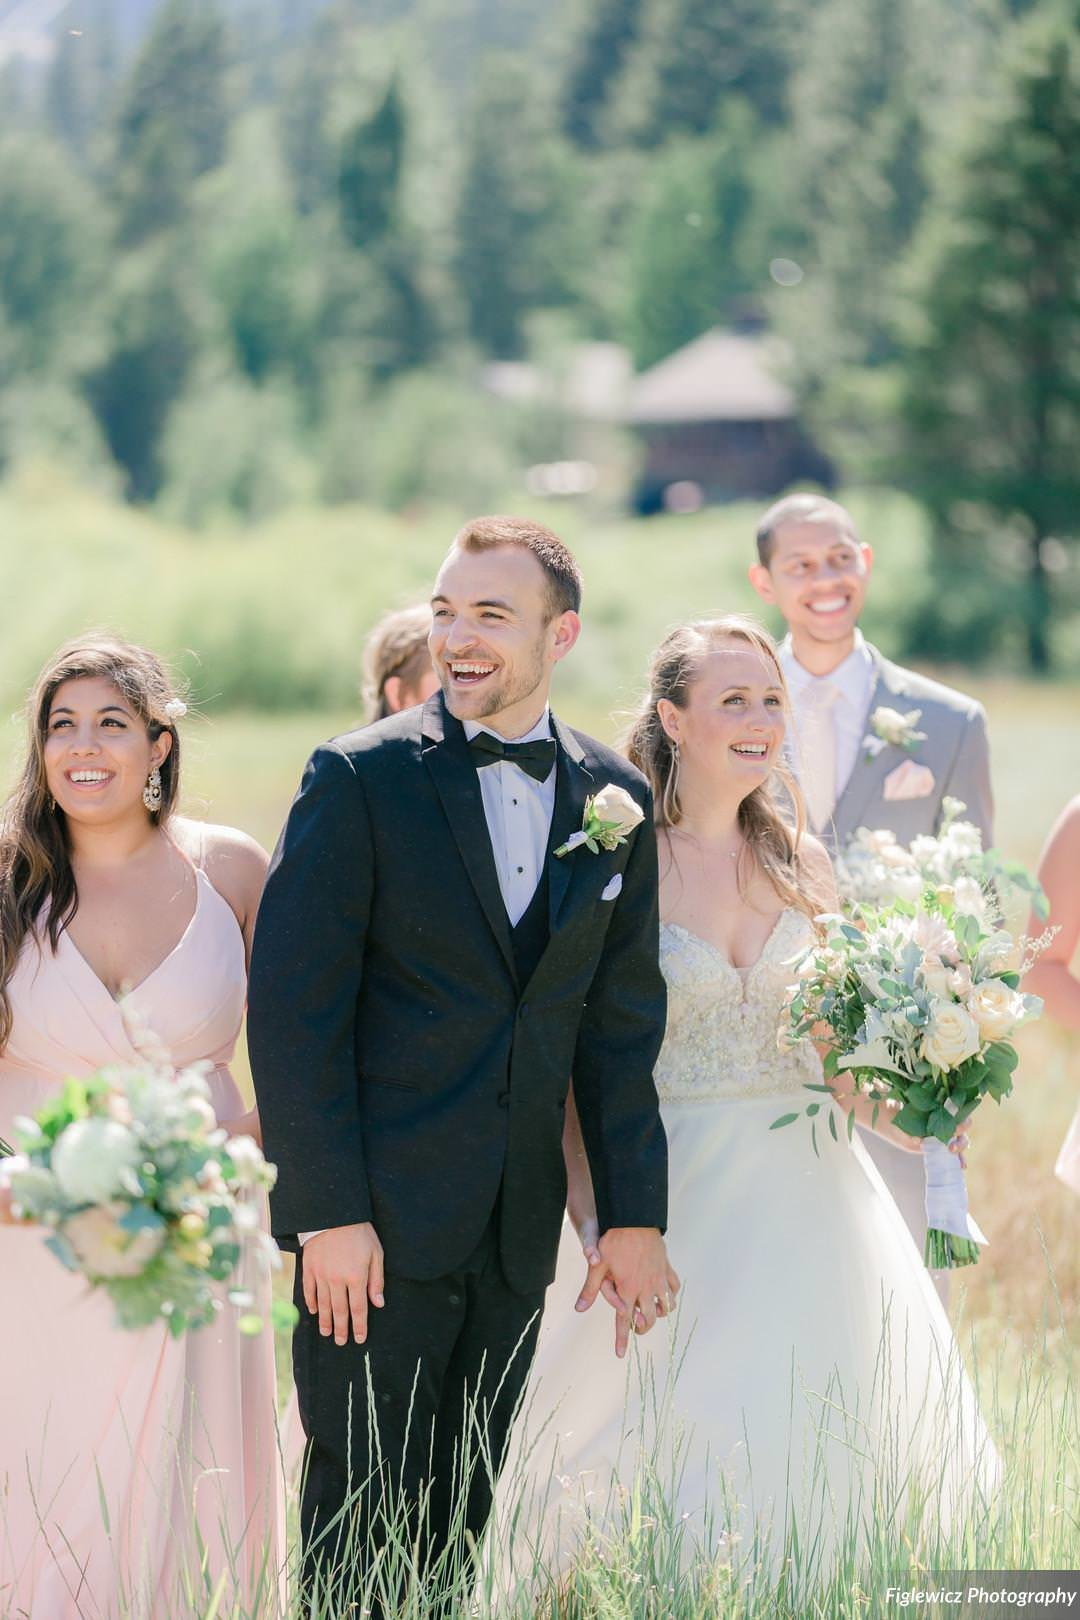 Garden_Tinsley_FiglewiczPhotography_LakeTahoeWeddingSquawValleyCreekTaylorBrendan00041_big